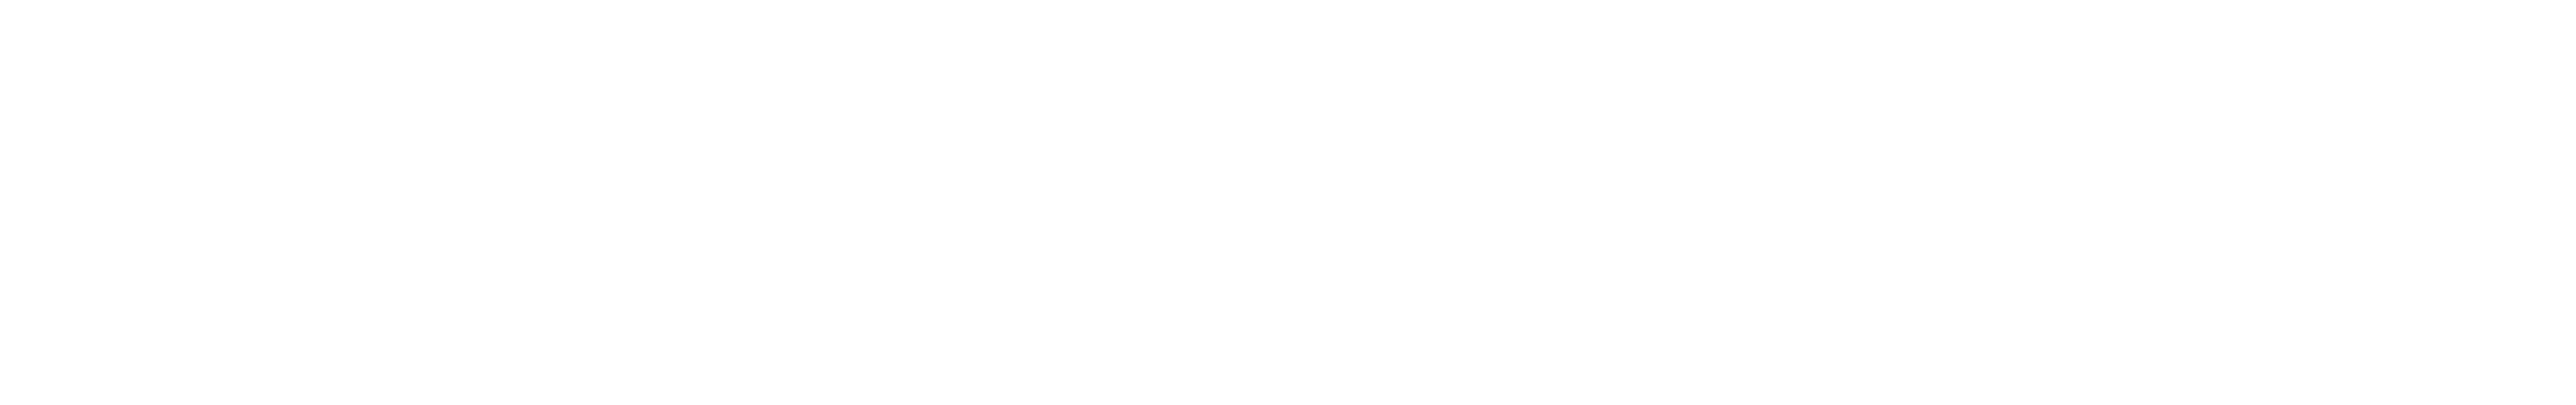 https://uniqueoffice.systems/wp-content/uploads/2019/08/white-xerox-logo-1.png